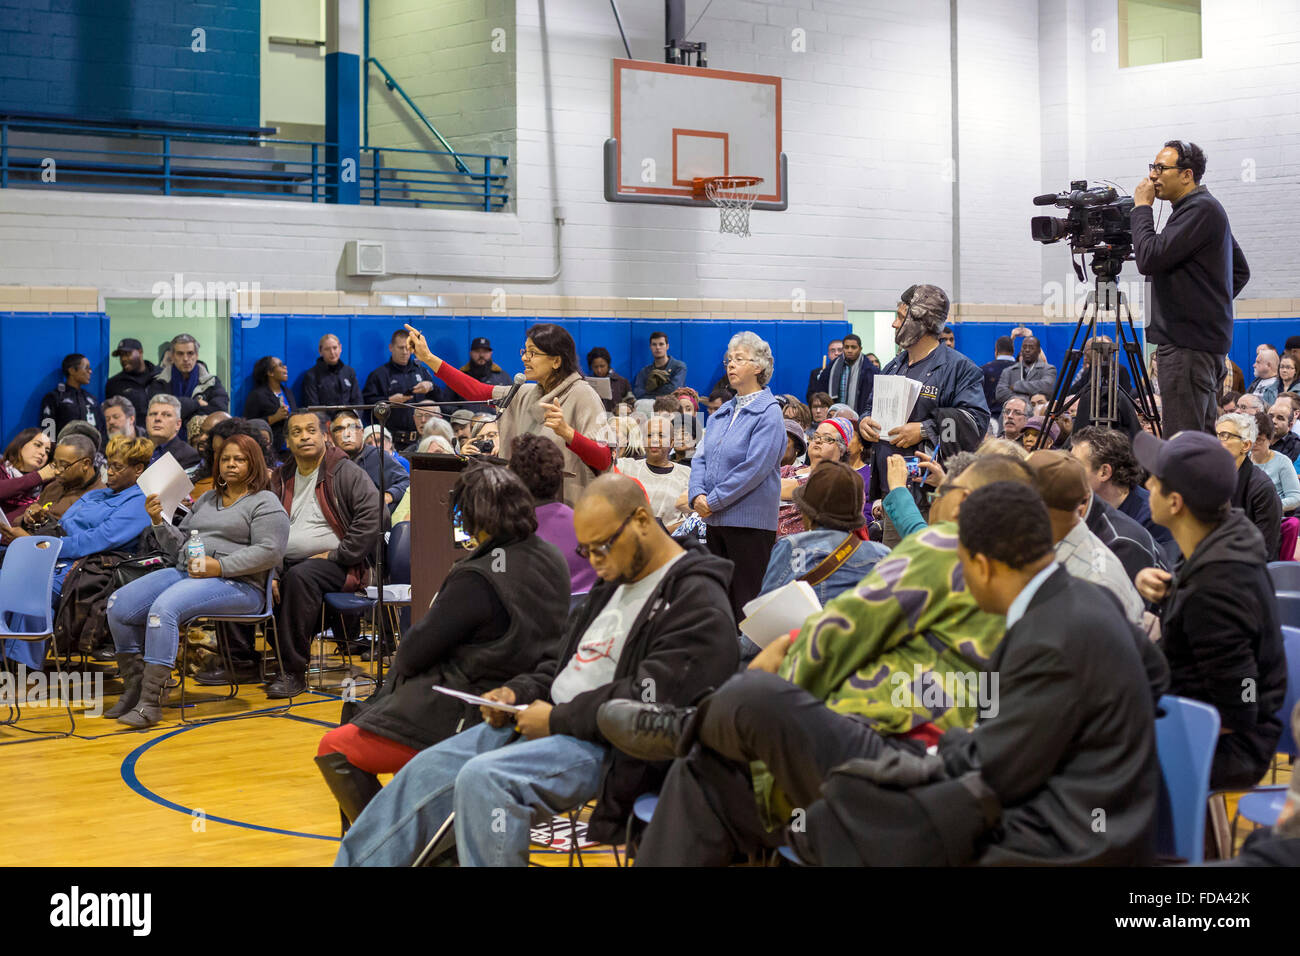 Detroit, Michigan, USA. 28th January 2016. Rashida Tlaib speaks at a Detroit city council public hearing, opposing - Stock Image